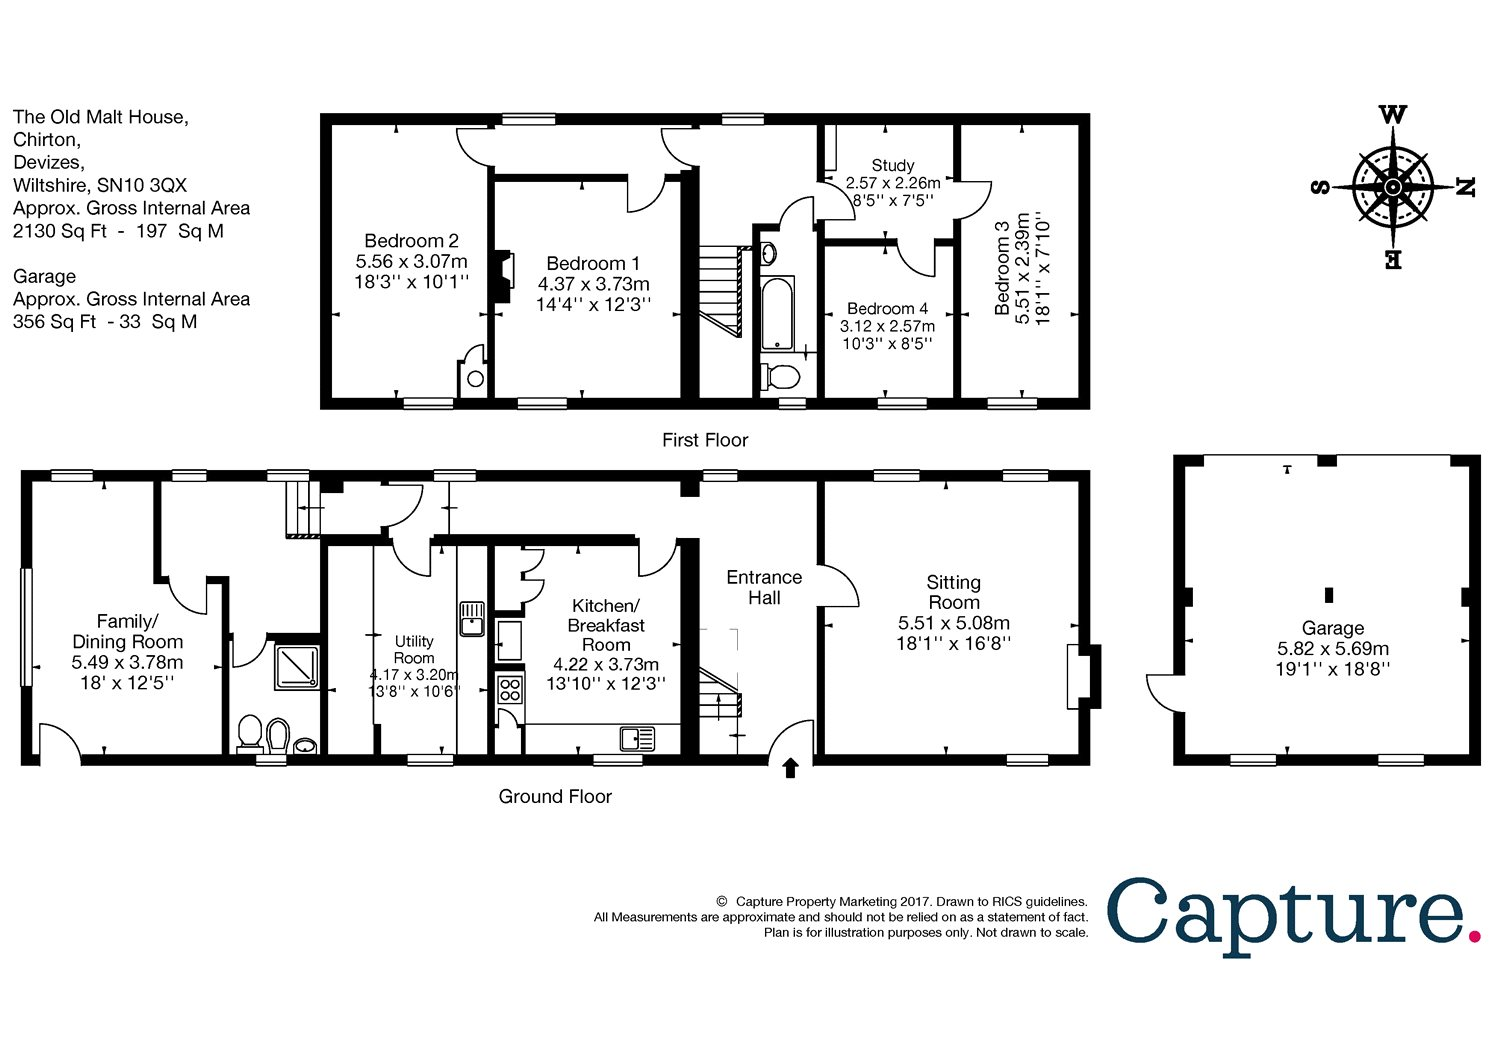 4 bedroom property for sale in Chirton, Wiltshire, SN10